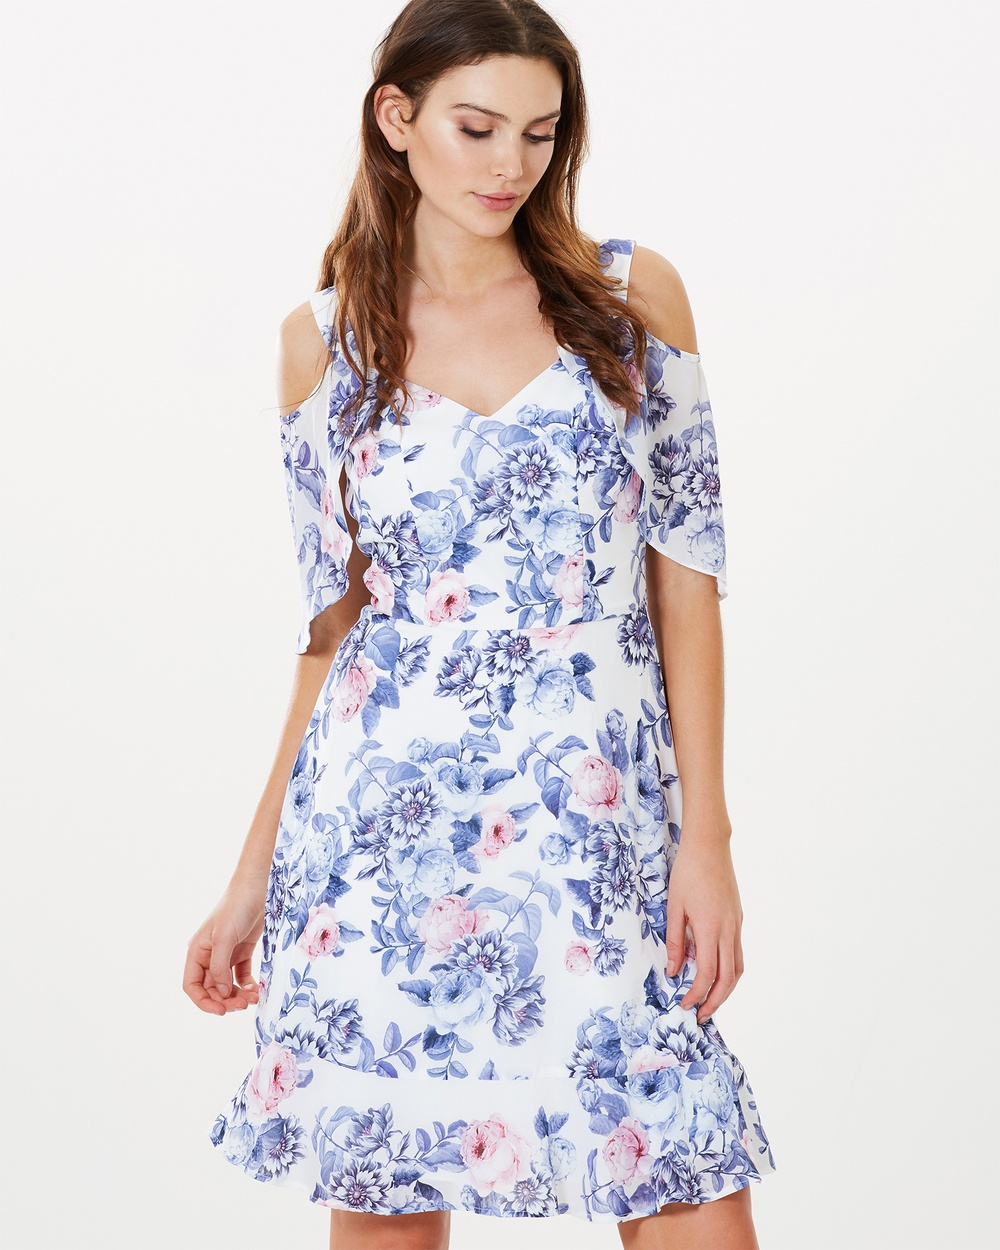 Review Montego Bay Dress Dresses Multi Montego Bay Dress